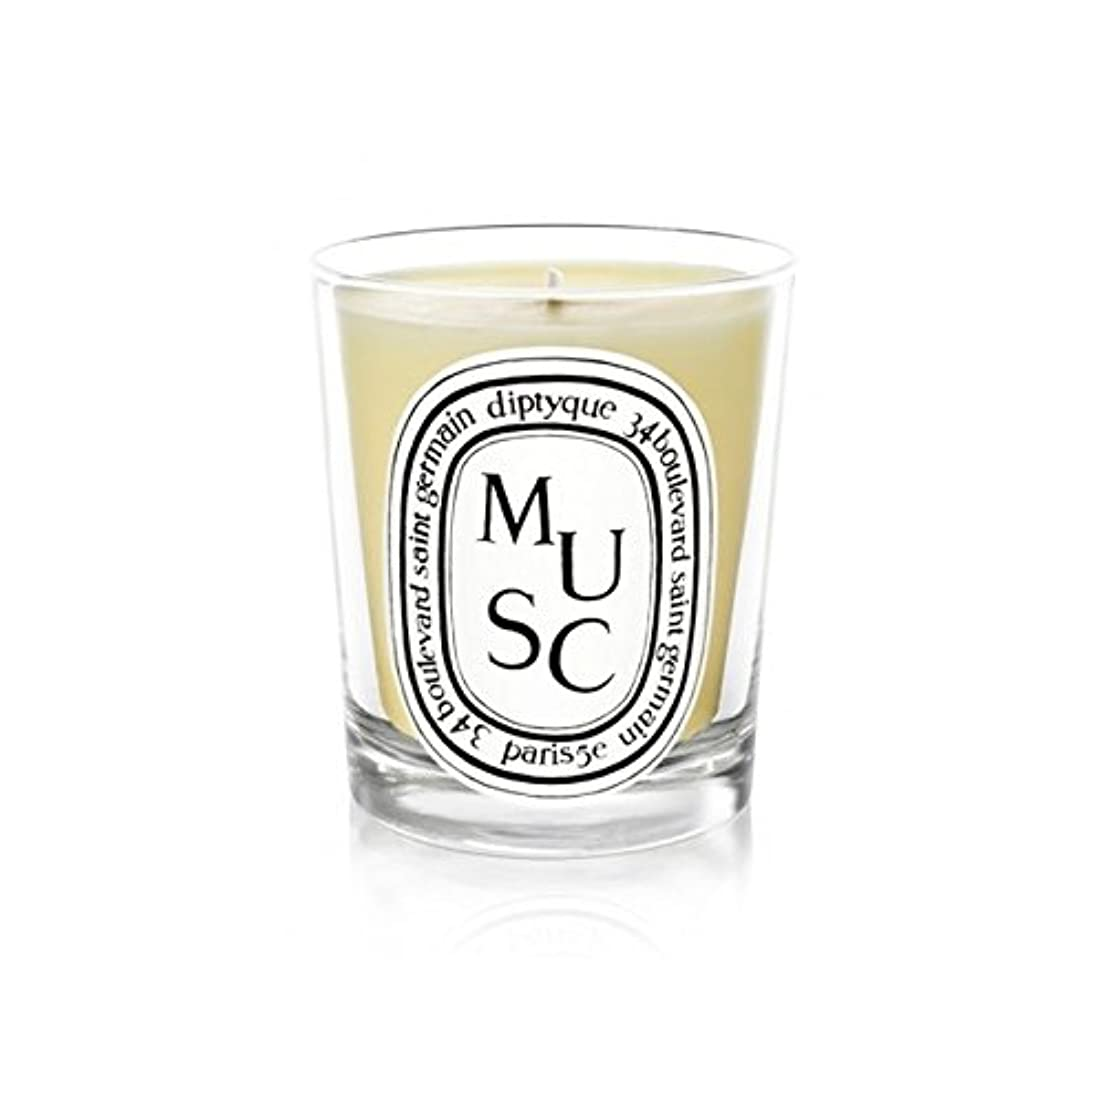 Diptyque Candle Musc / Musk 190g (Pack of 2) - DiptyqueキャンドルMusc /ムスク190グラム (x2) [並行輸入品]